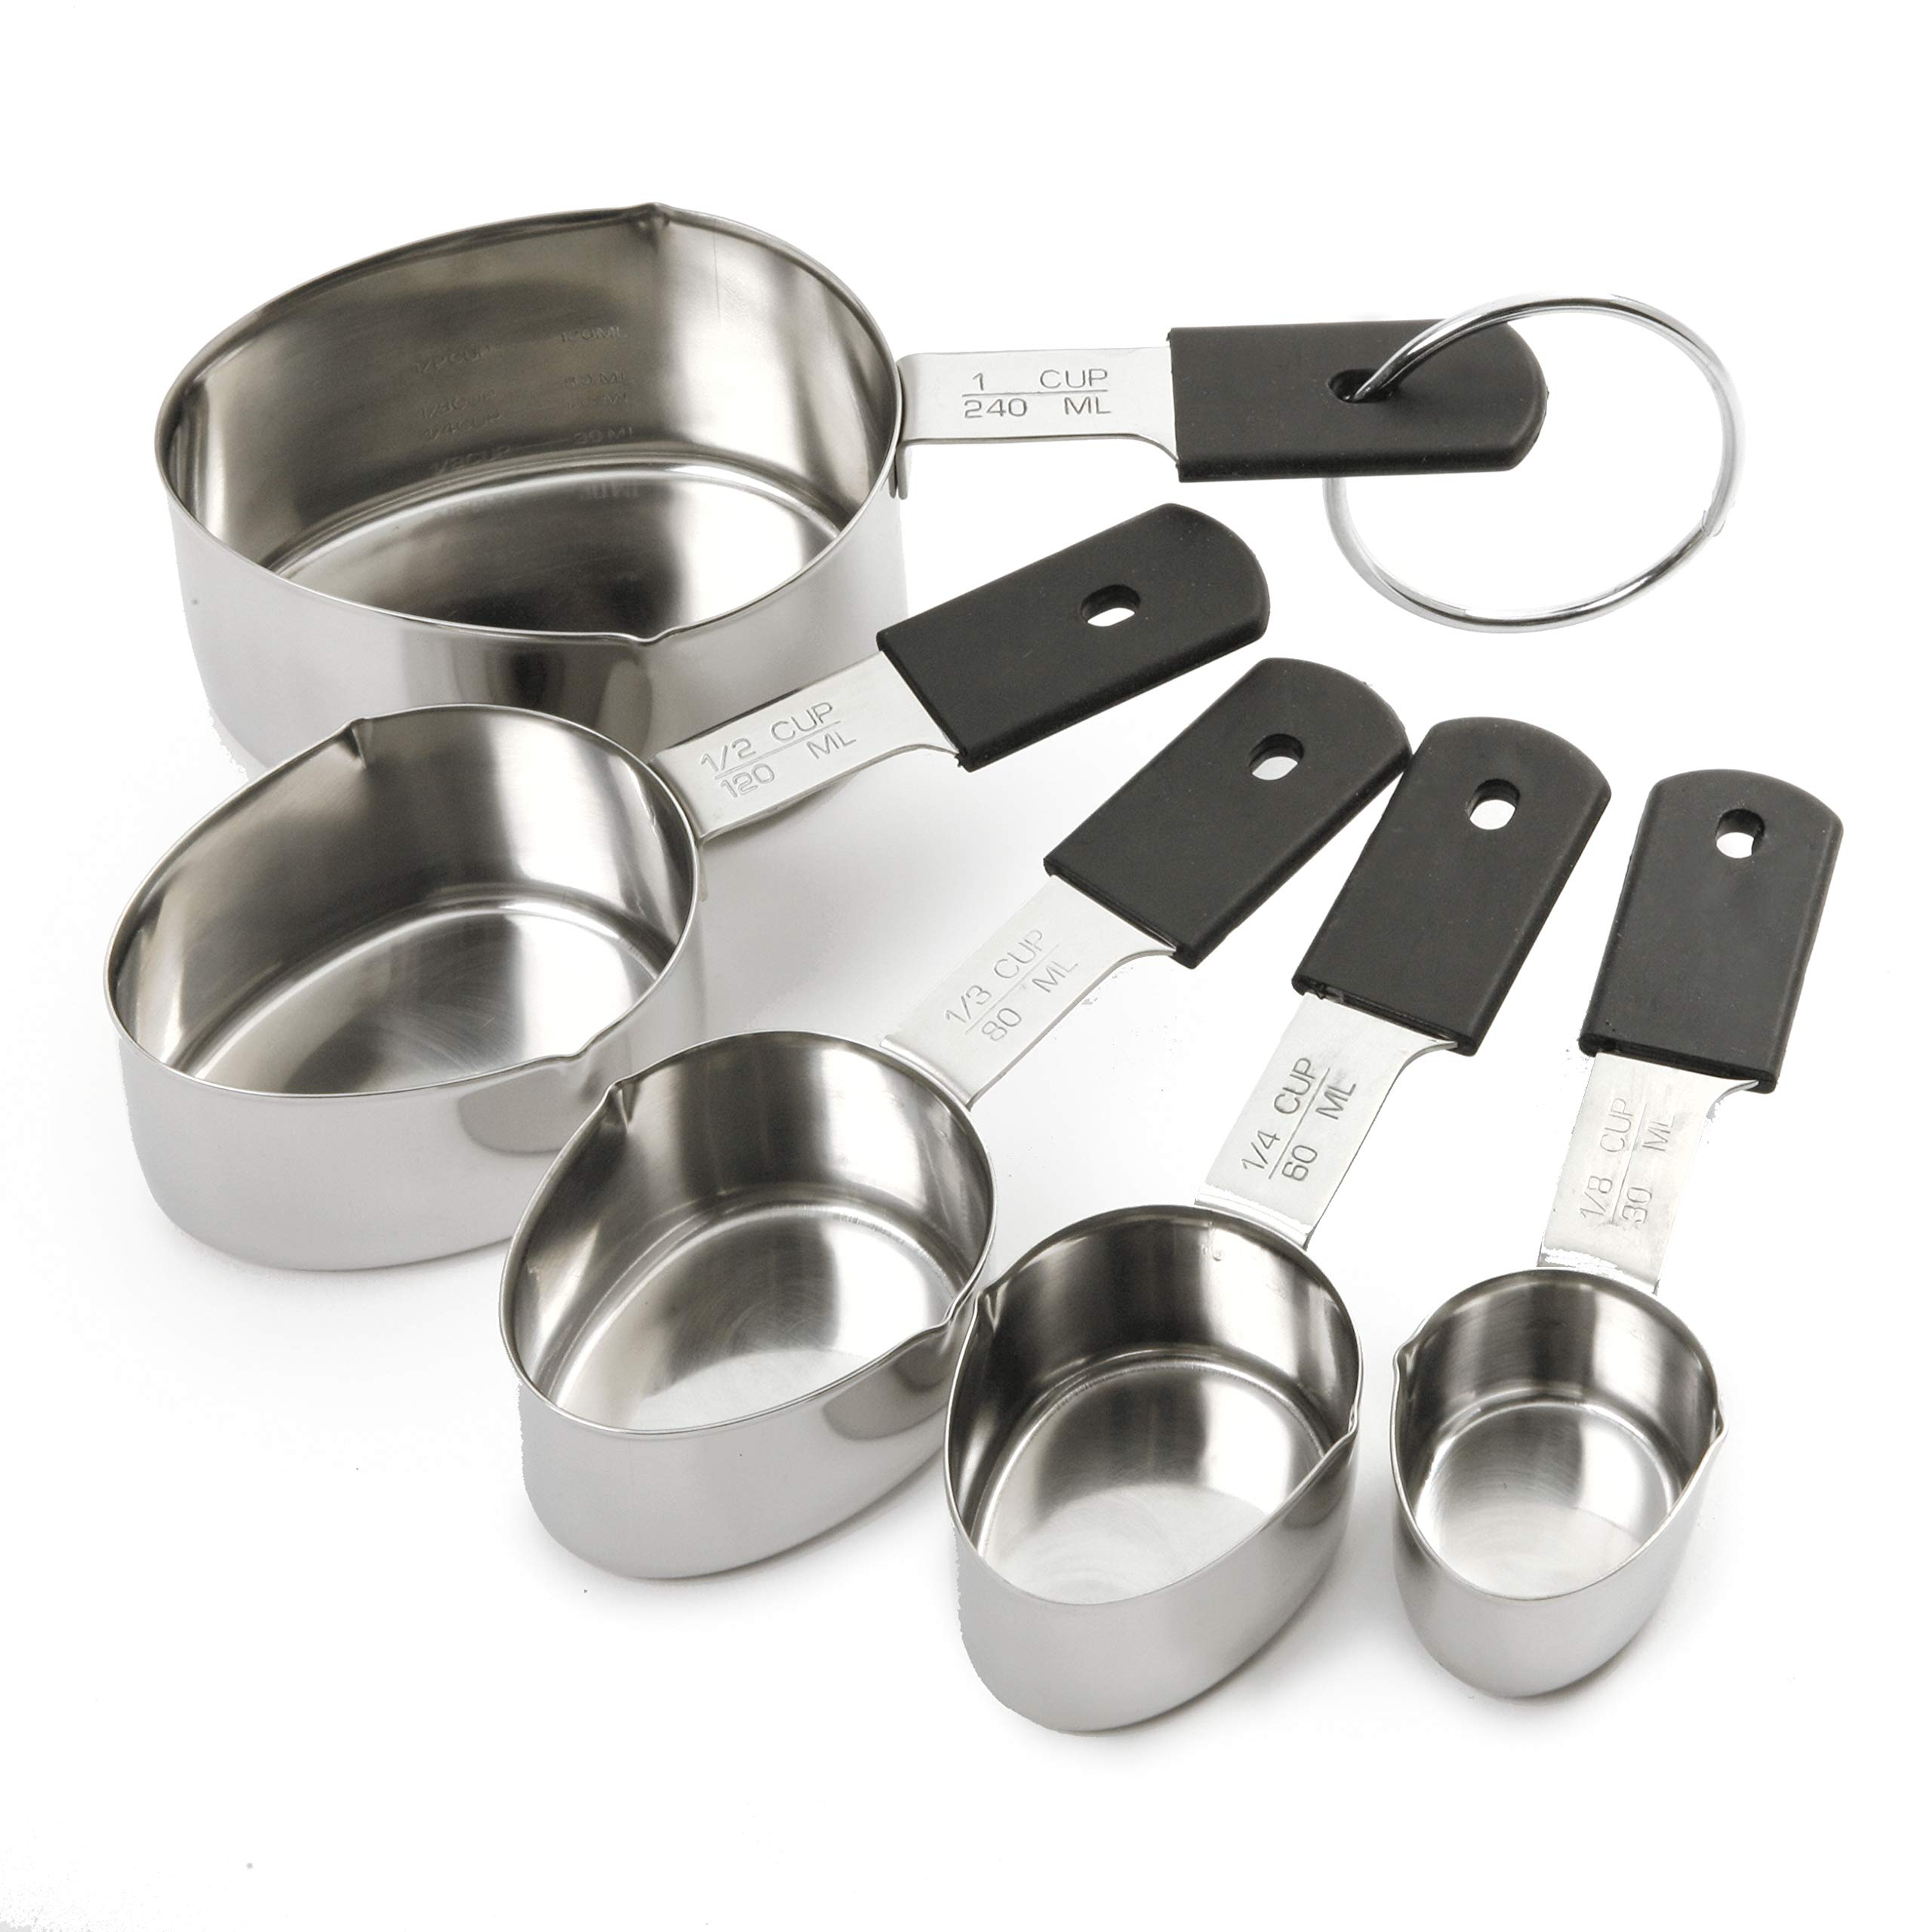 Norpro Grip-Ez Stainless Steel Measuring Cups, 5-Piece by Norpro